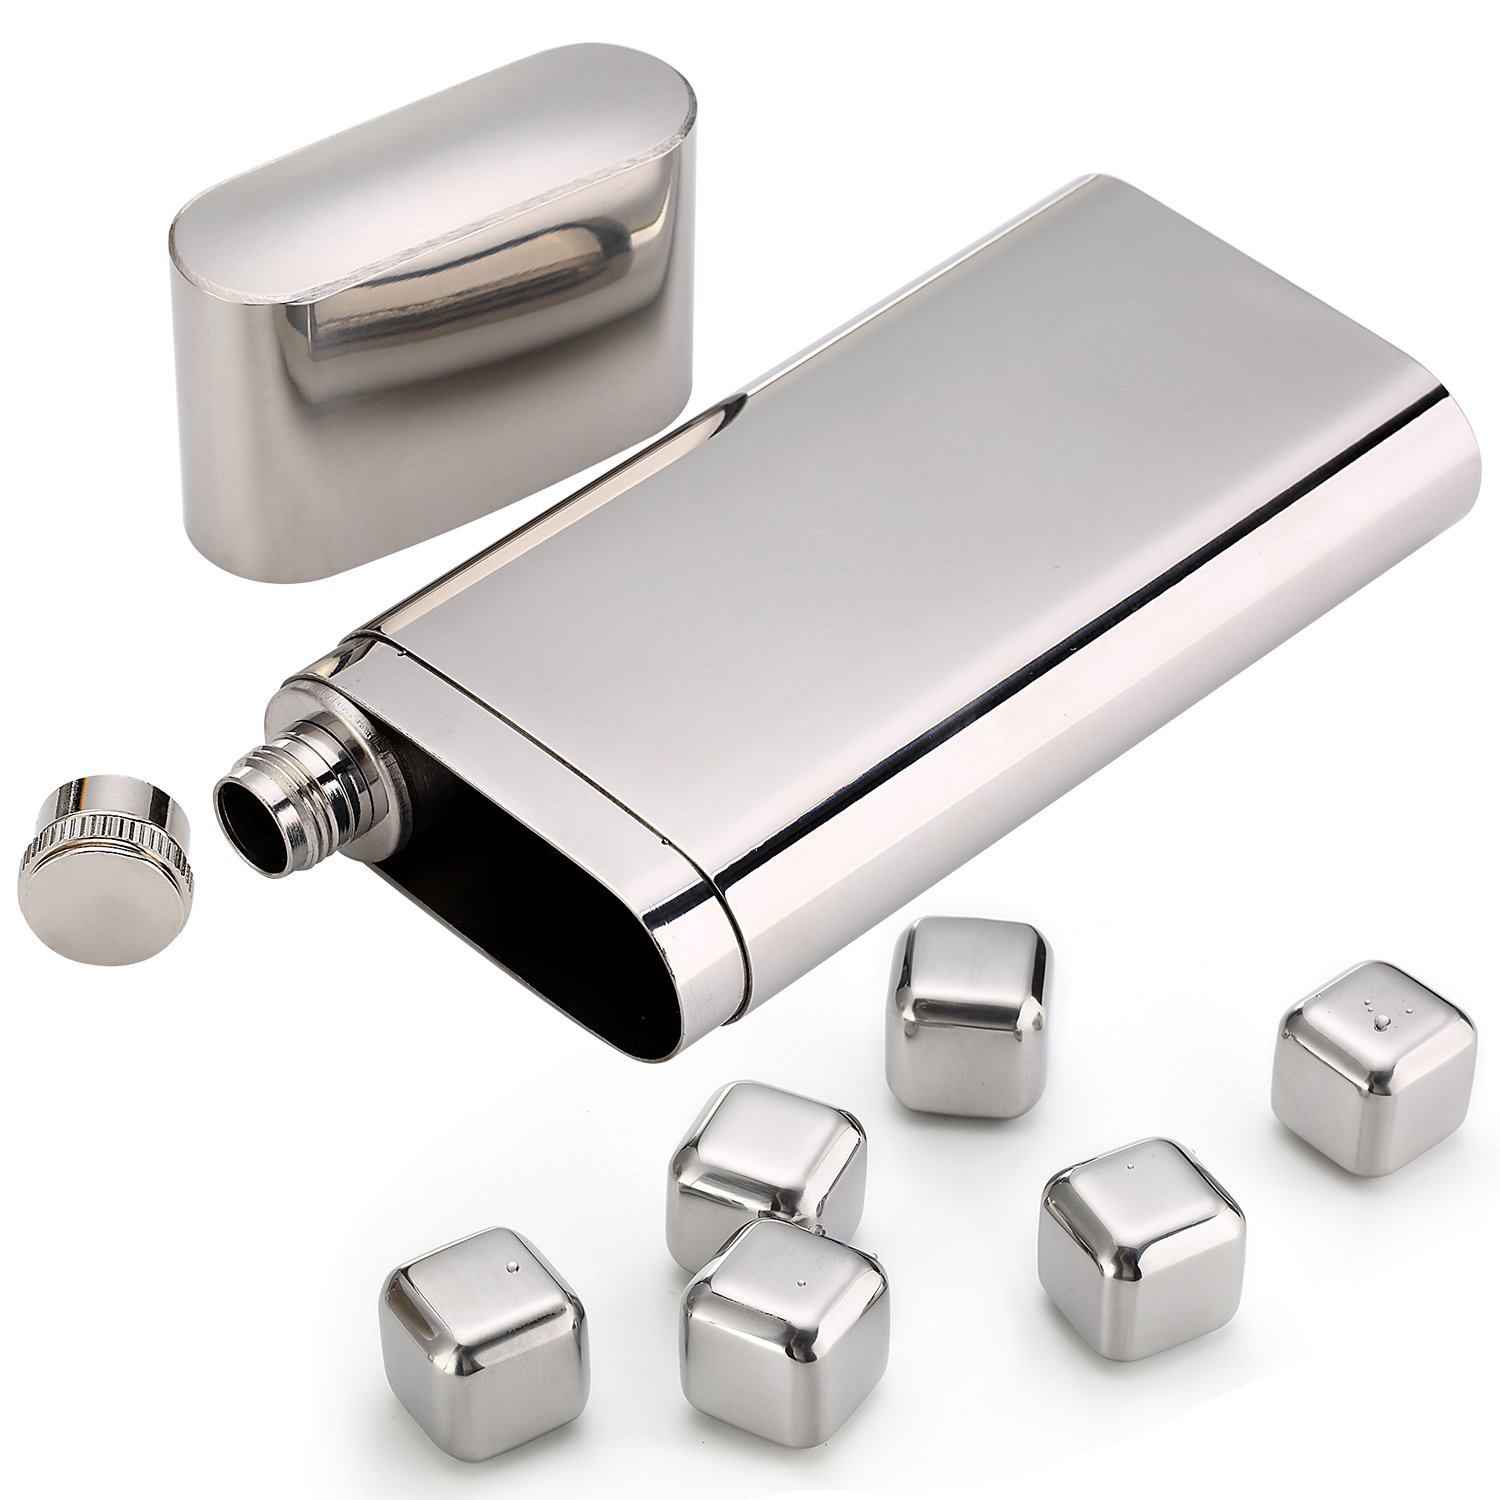 Stainless Steel Chilling Rocks / Stones (8) + Dual Cigar Flask (1) [Gift Set] + Funnel (1) + Tongs (1) [FDA Approved] by YazyCraft (Image #3)